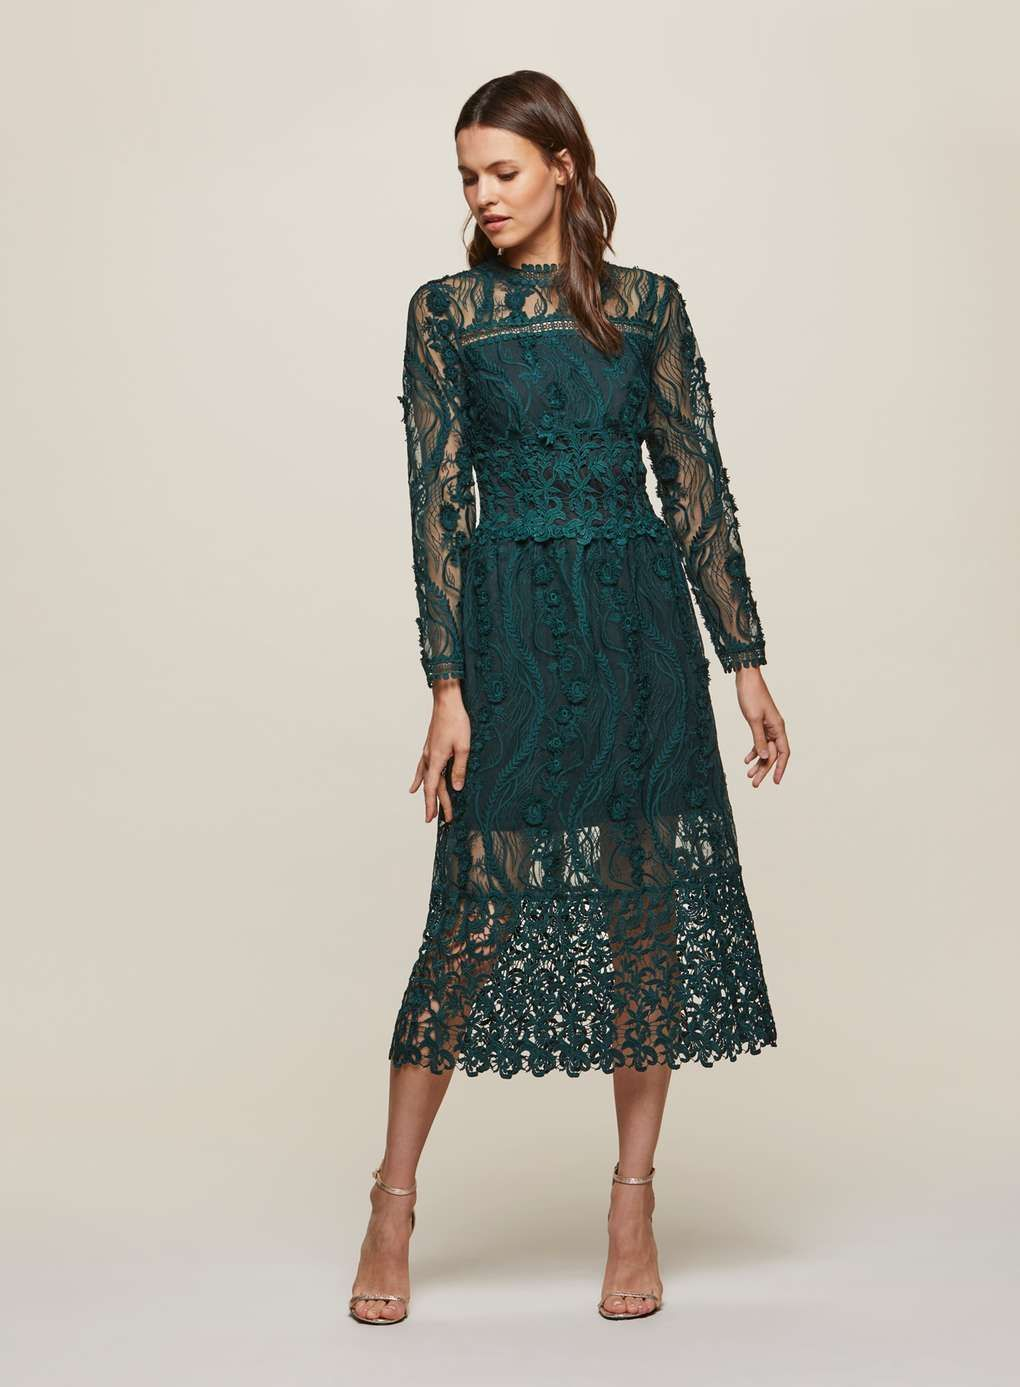 Dresses to wear to a fall wedding for a guest  What to wear to a winter wedding  Winter wedding guests Winter